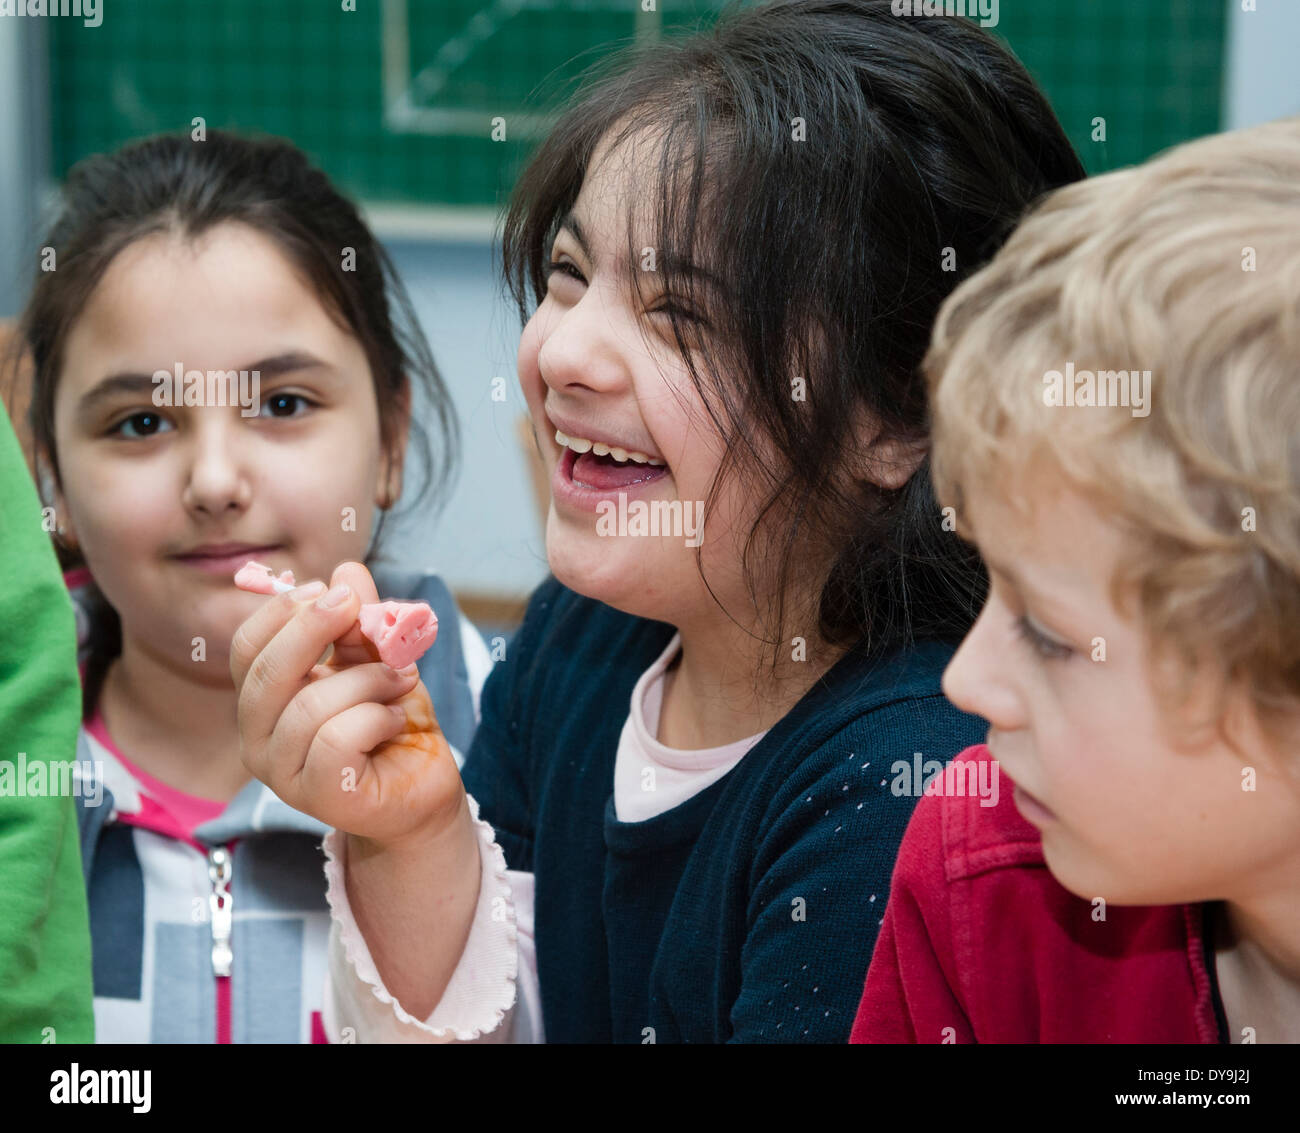 Non-disabled and disabled pupils (in this case a girl suffering from Down's syndrome) learn together in the same classroom. - Stock Image